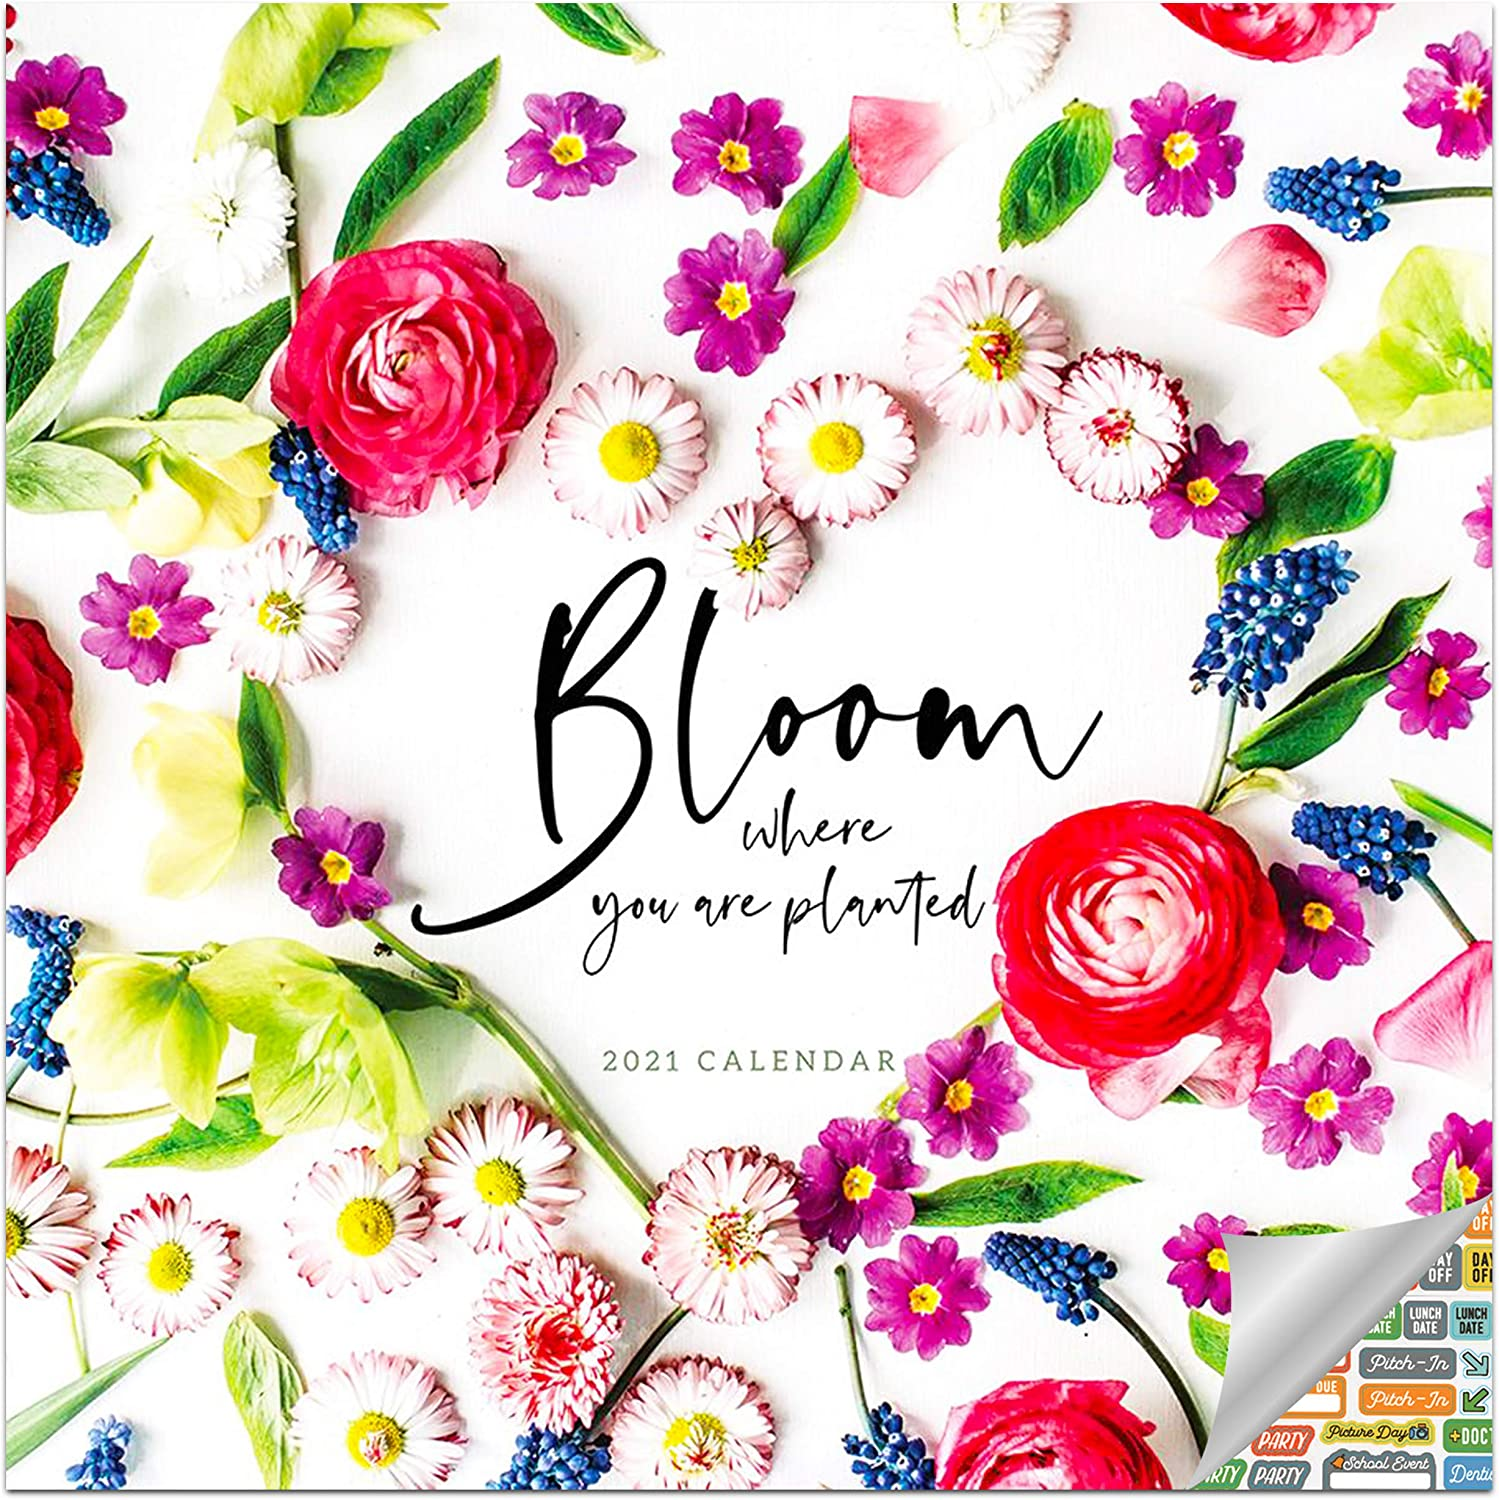 Bloom Calendar 2021 Bundle - Deluxe 2021 Inspiration Wall Calendar with Over 100 Calendar Stickers (Motivational Quotes Gifts, Office Supplies)